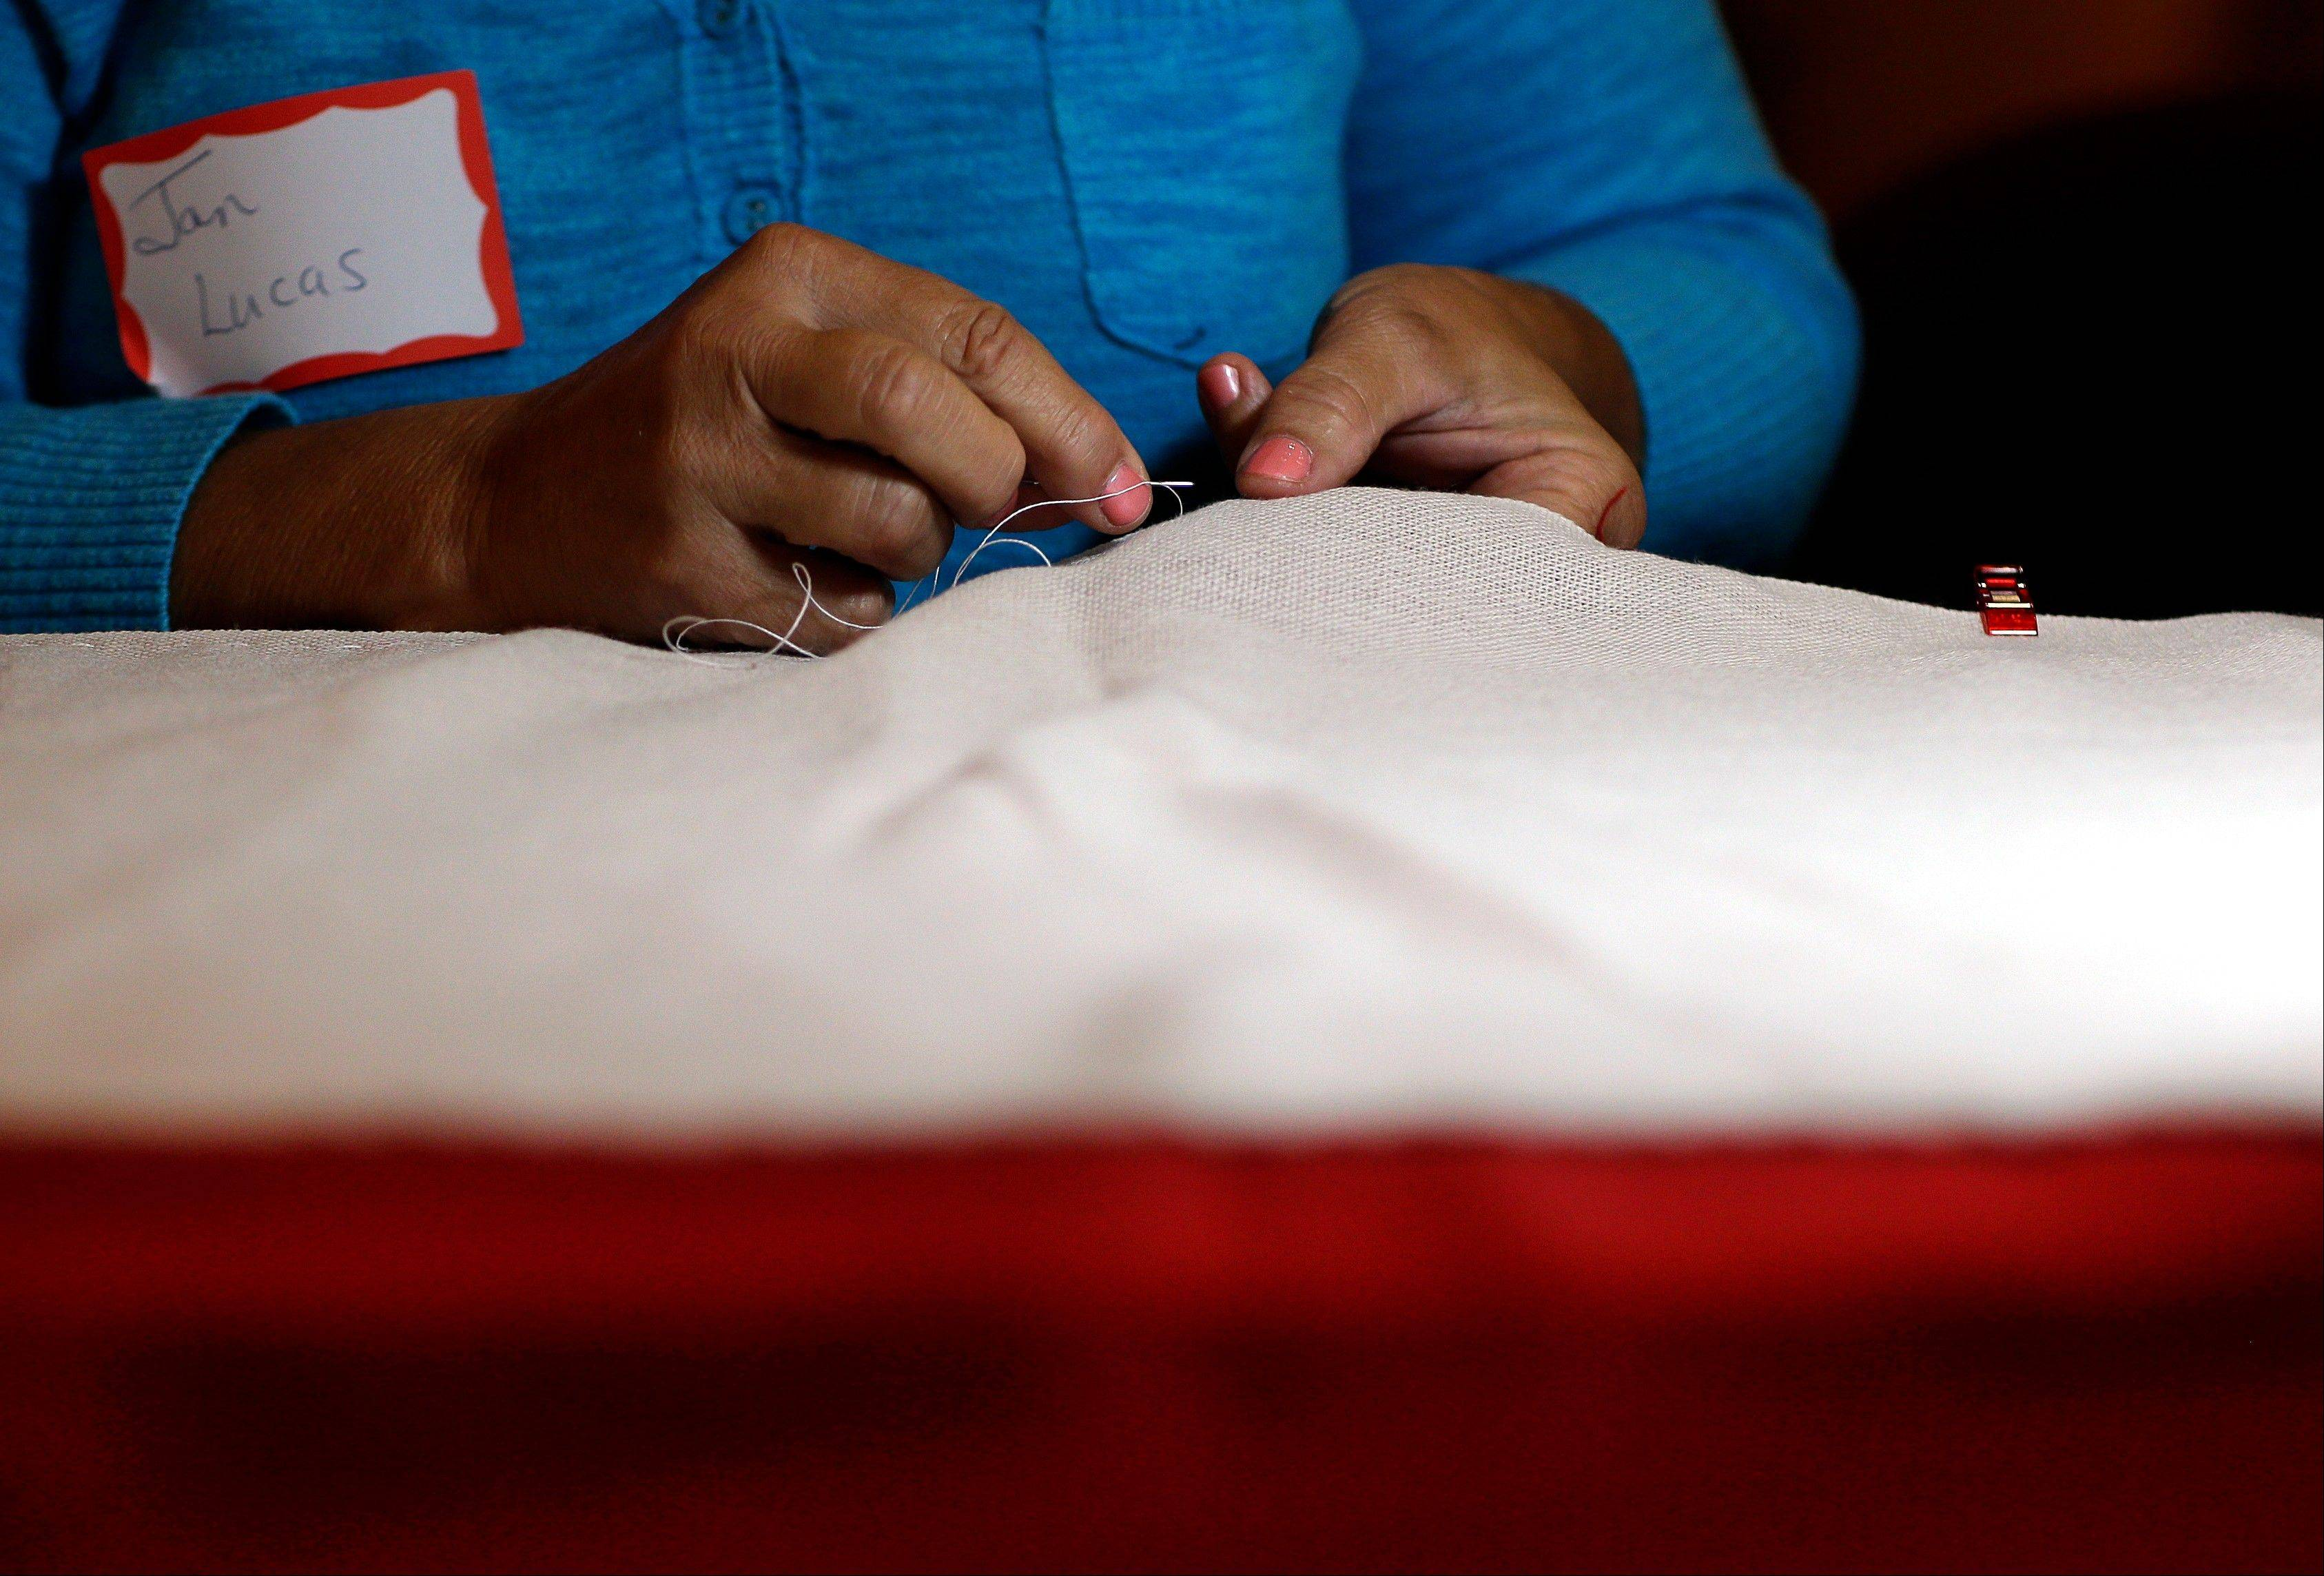 Volunteer Jan Lucas sews part of a replica of the star-spangled banner in Baltimore as part of a project to commemorate the creation of the flag that inspired Americaís national anthem.